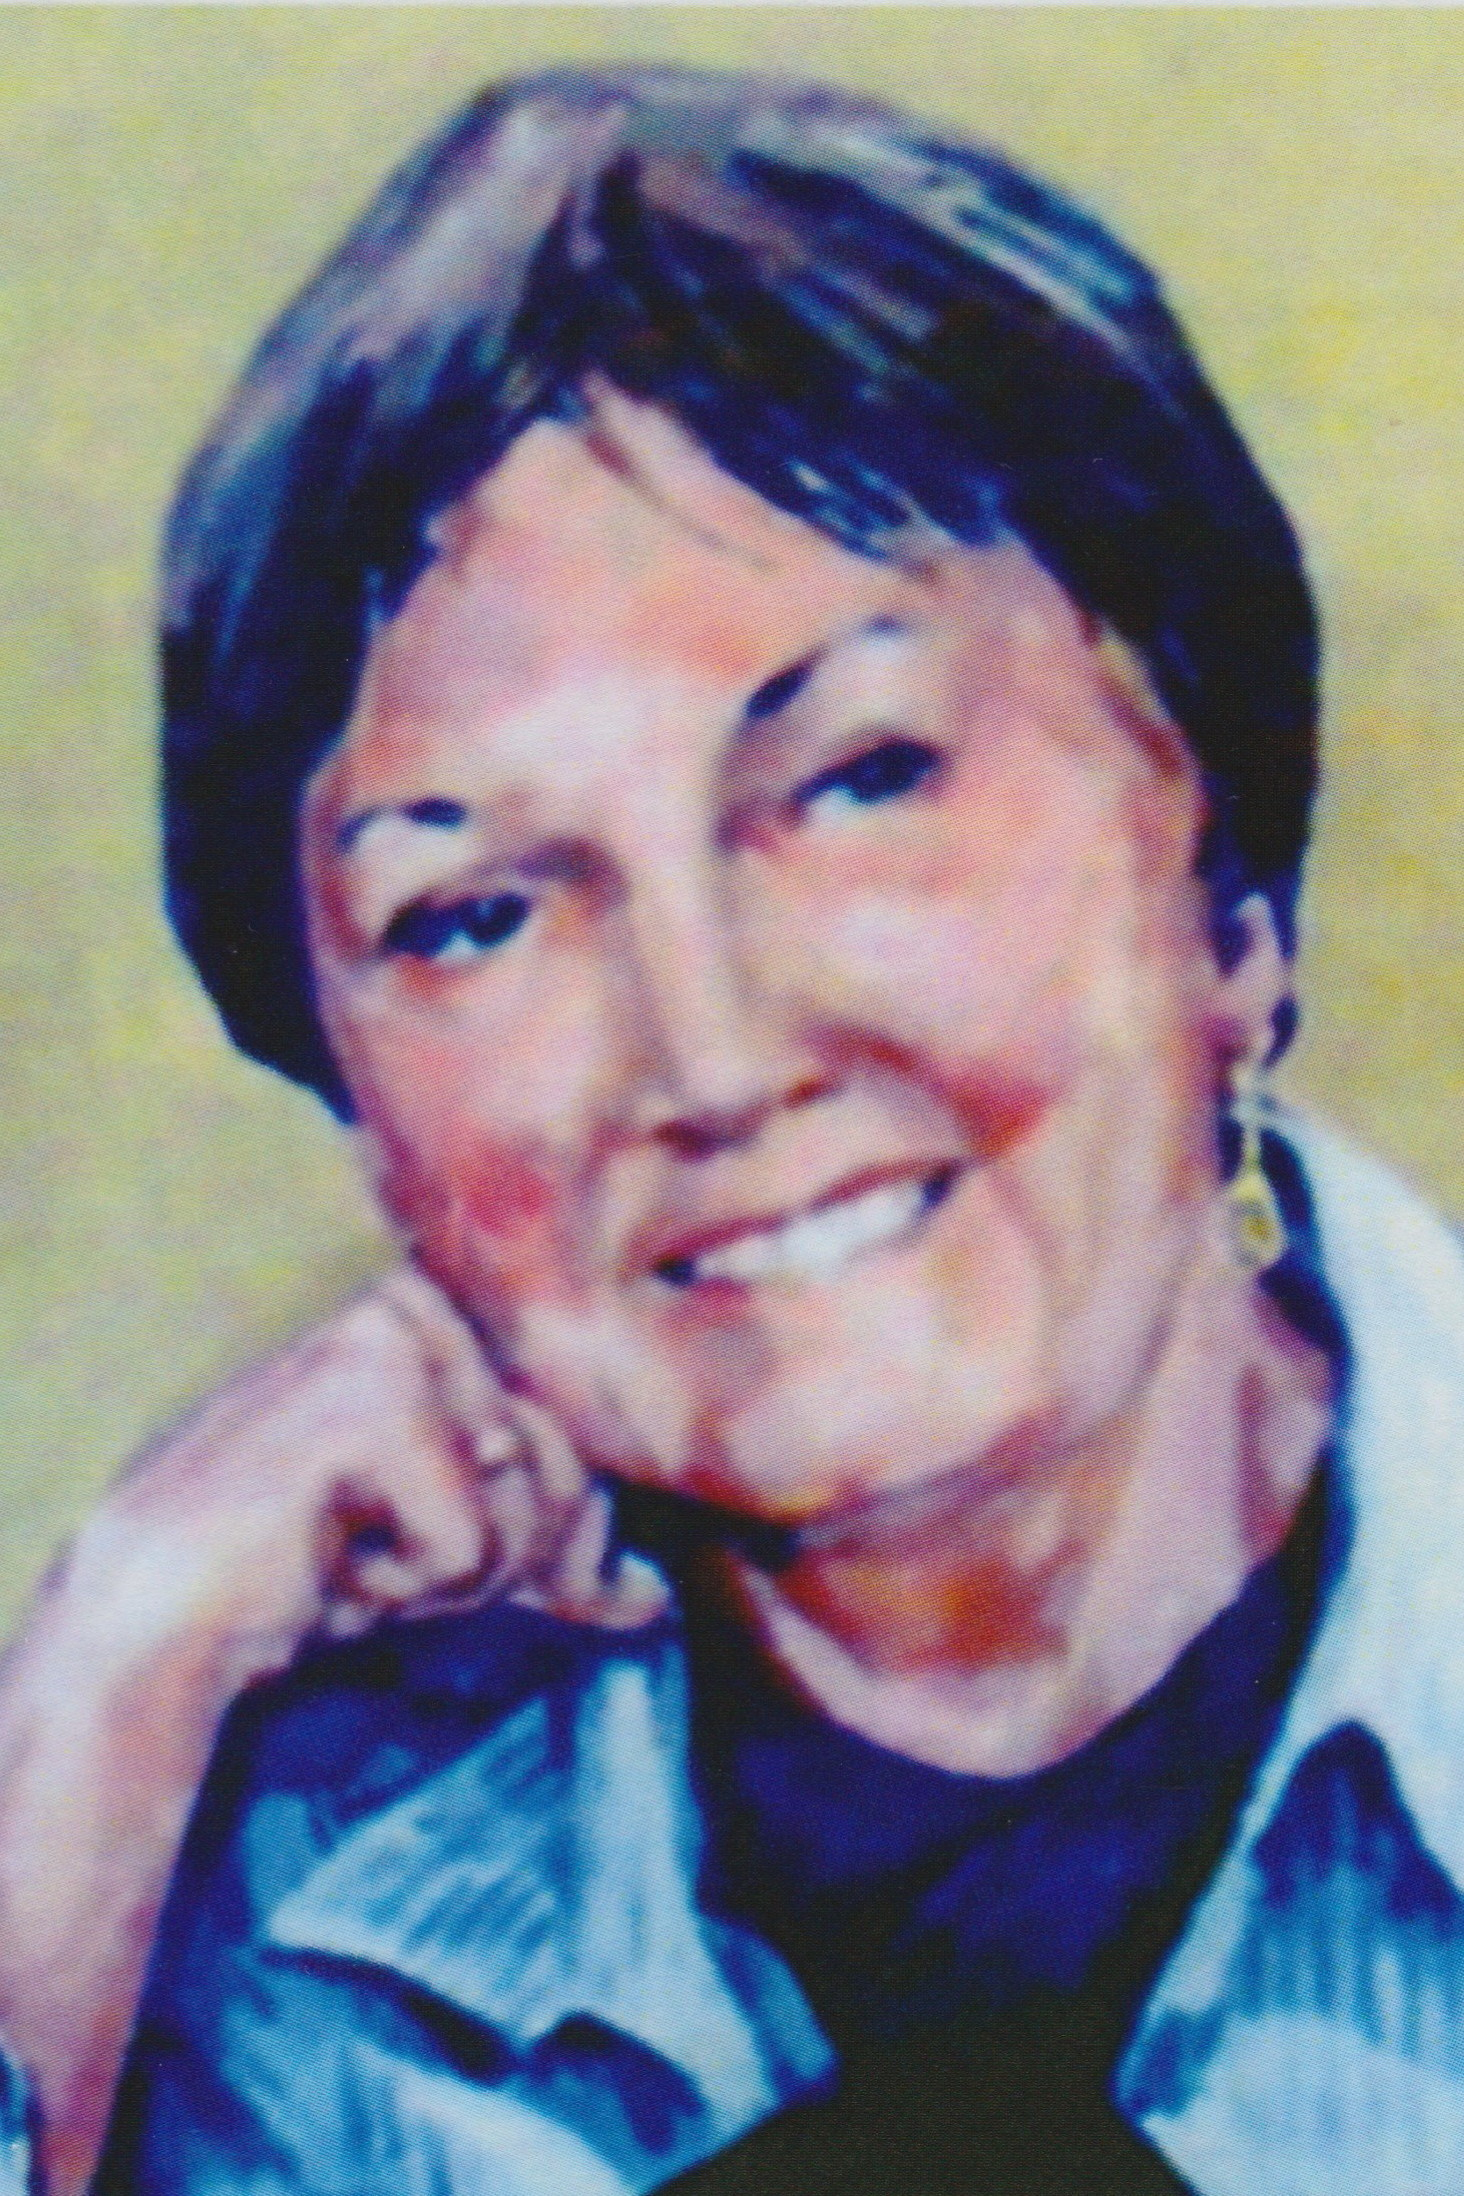 TRIBUTE: A portrait of Glenda Vibert painted by her husband David Vibert